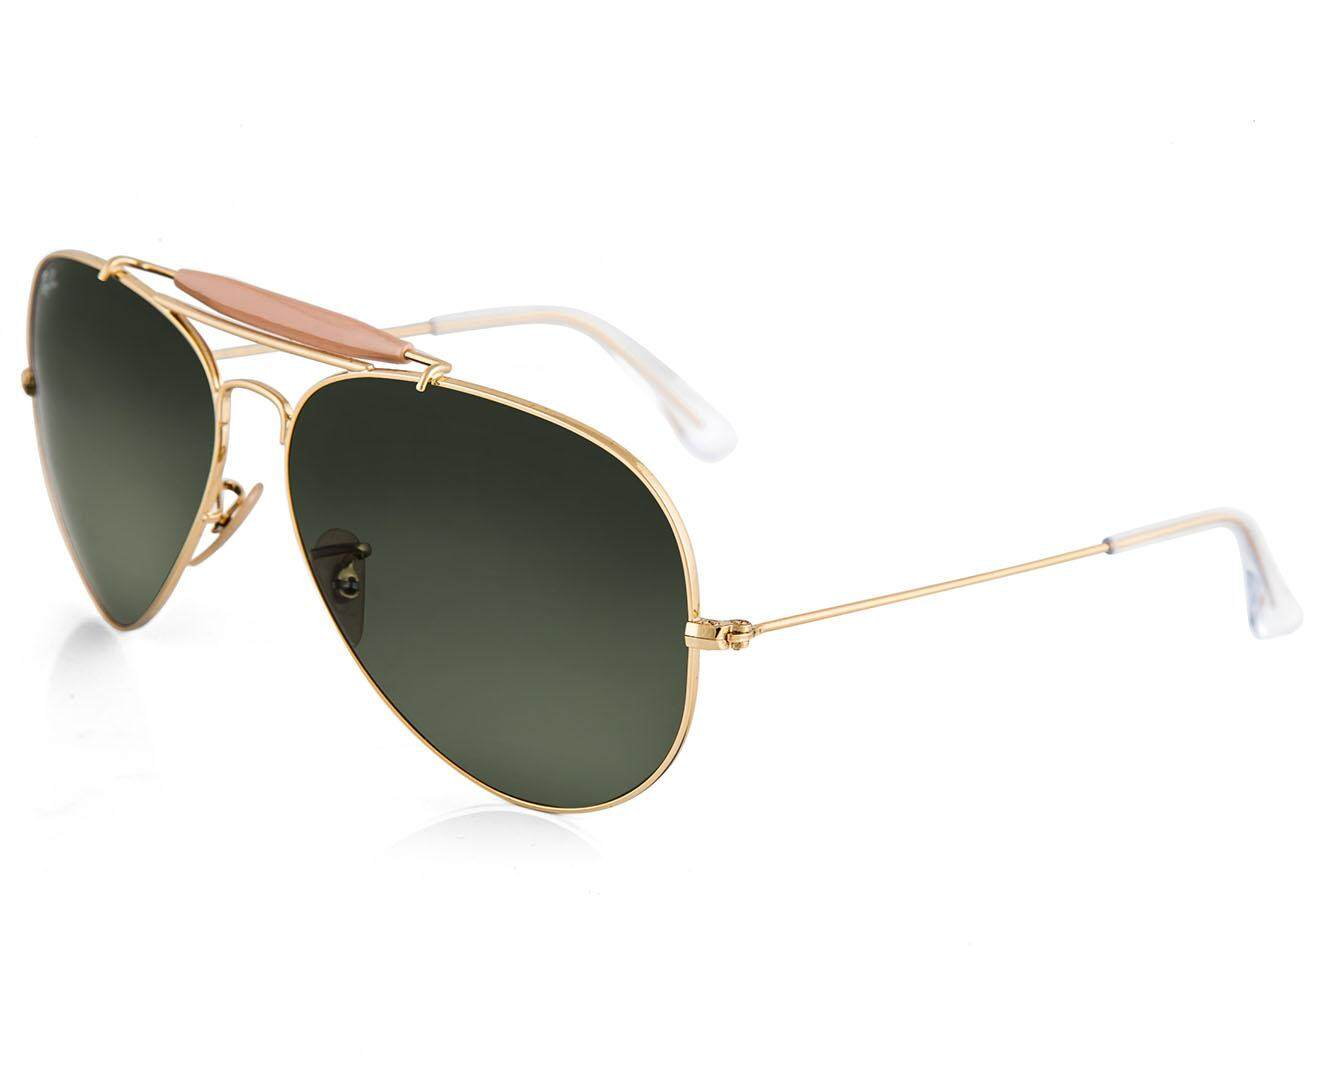 86eaa30b3c1 Ray Ban Clubmaster Rb5154 49x21 Polarized Clip On Sunglasses « One ...